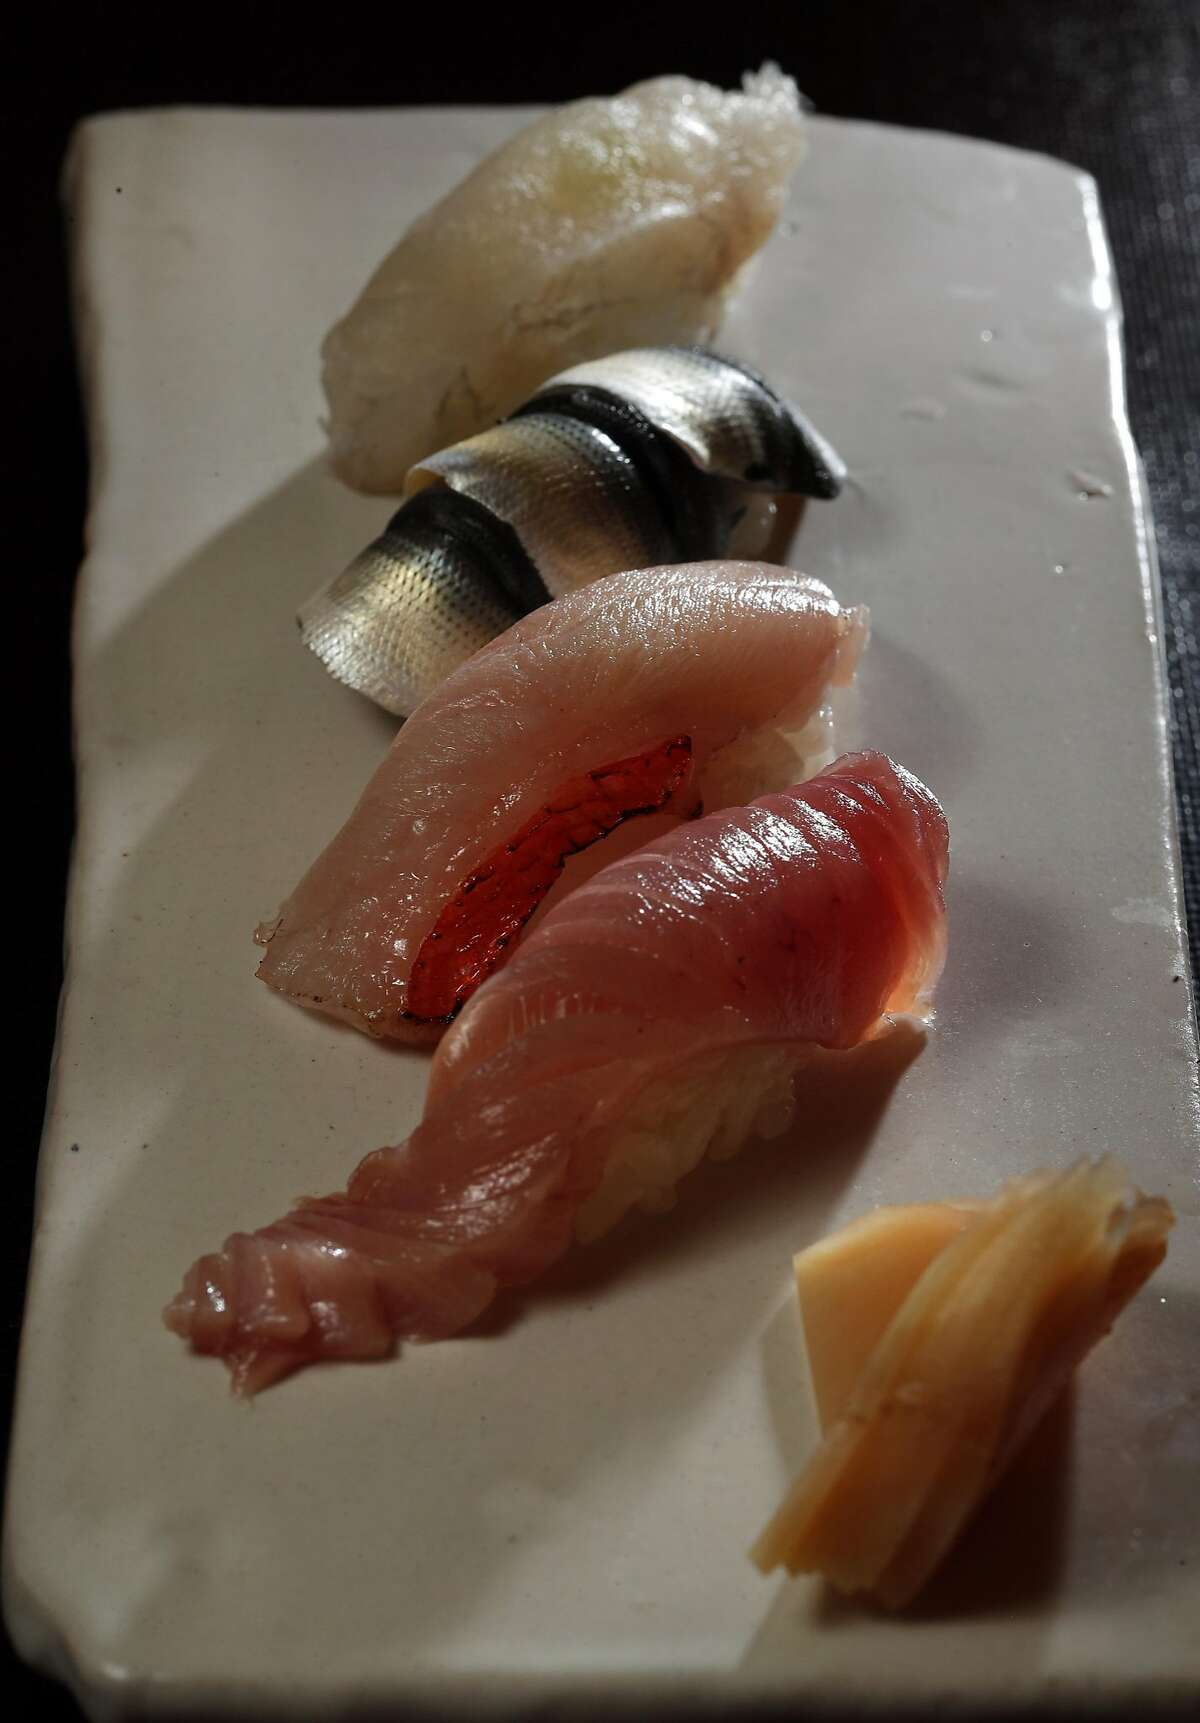 The Chef's Omakase Nigiri Sushi, featuring Kohada, Kochi, Meji Maguro and Kinmedai, served at Hashiri in San Francisco, Calif., on Thursday, August 3, 2017. Hashiri offers an Omasake or chef's choice sushi menu.